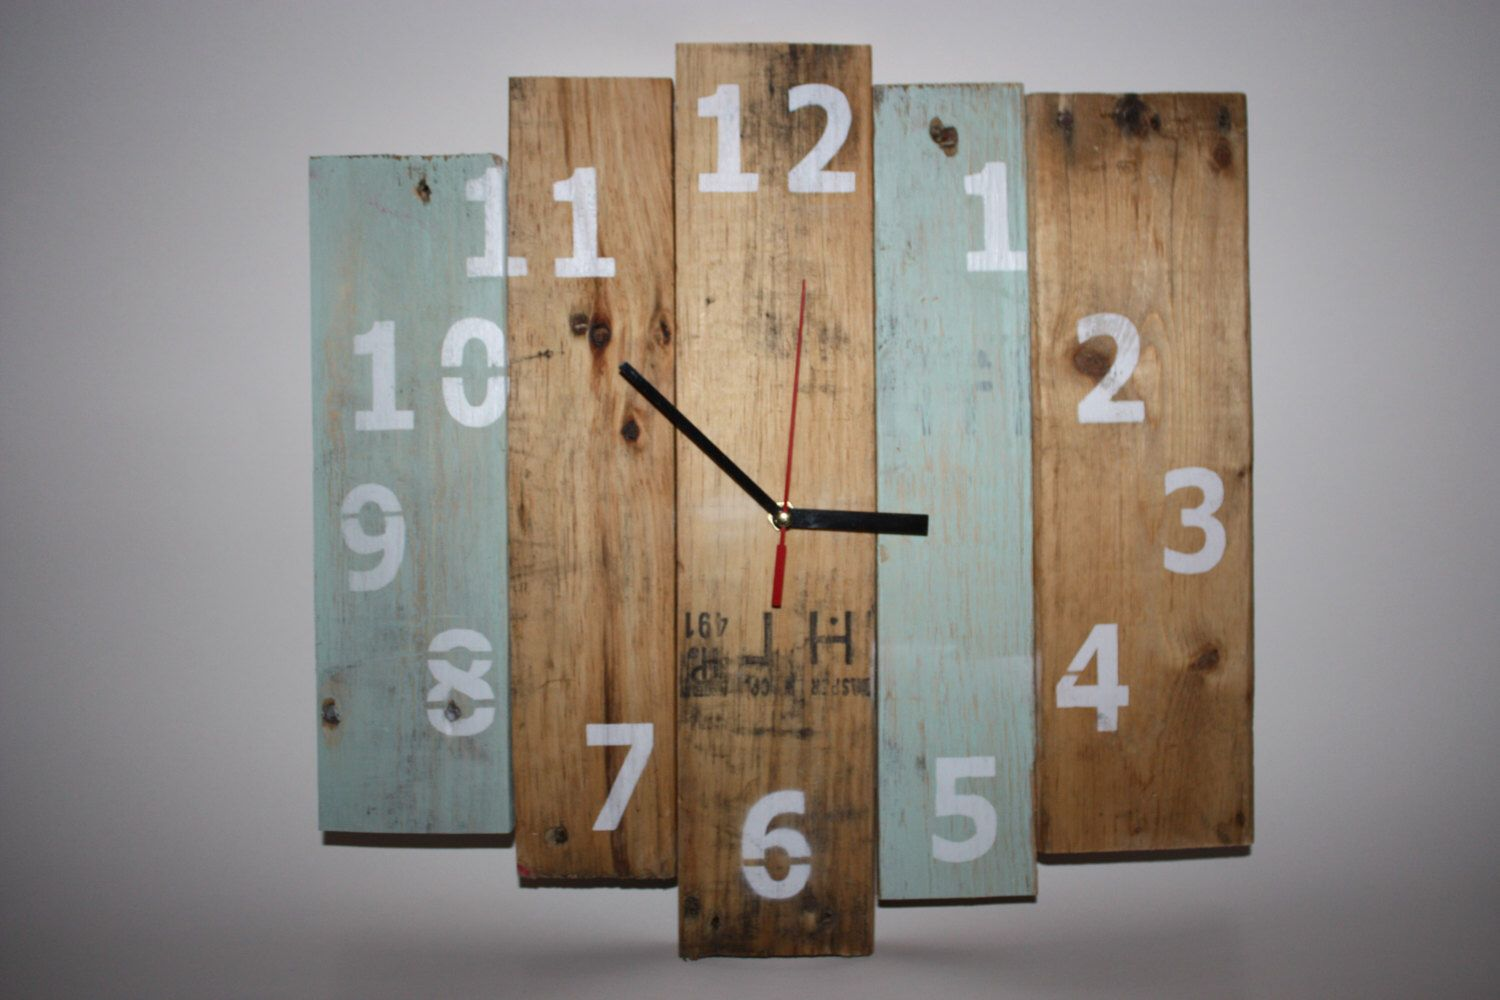 Rustic Wooden Clock, Recycled Pallet Clock, Recycled wooden wall clock, Reclaimed Wood Clock with numbers by HoskinsWoodWorking on Etsy https://www.etsy.com/listing/227126987/rustic-wooden-clock-recycled-pallet